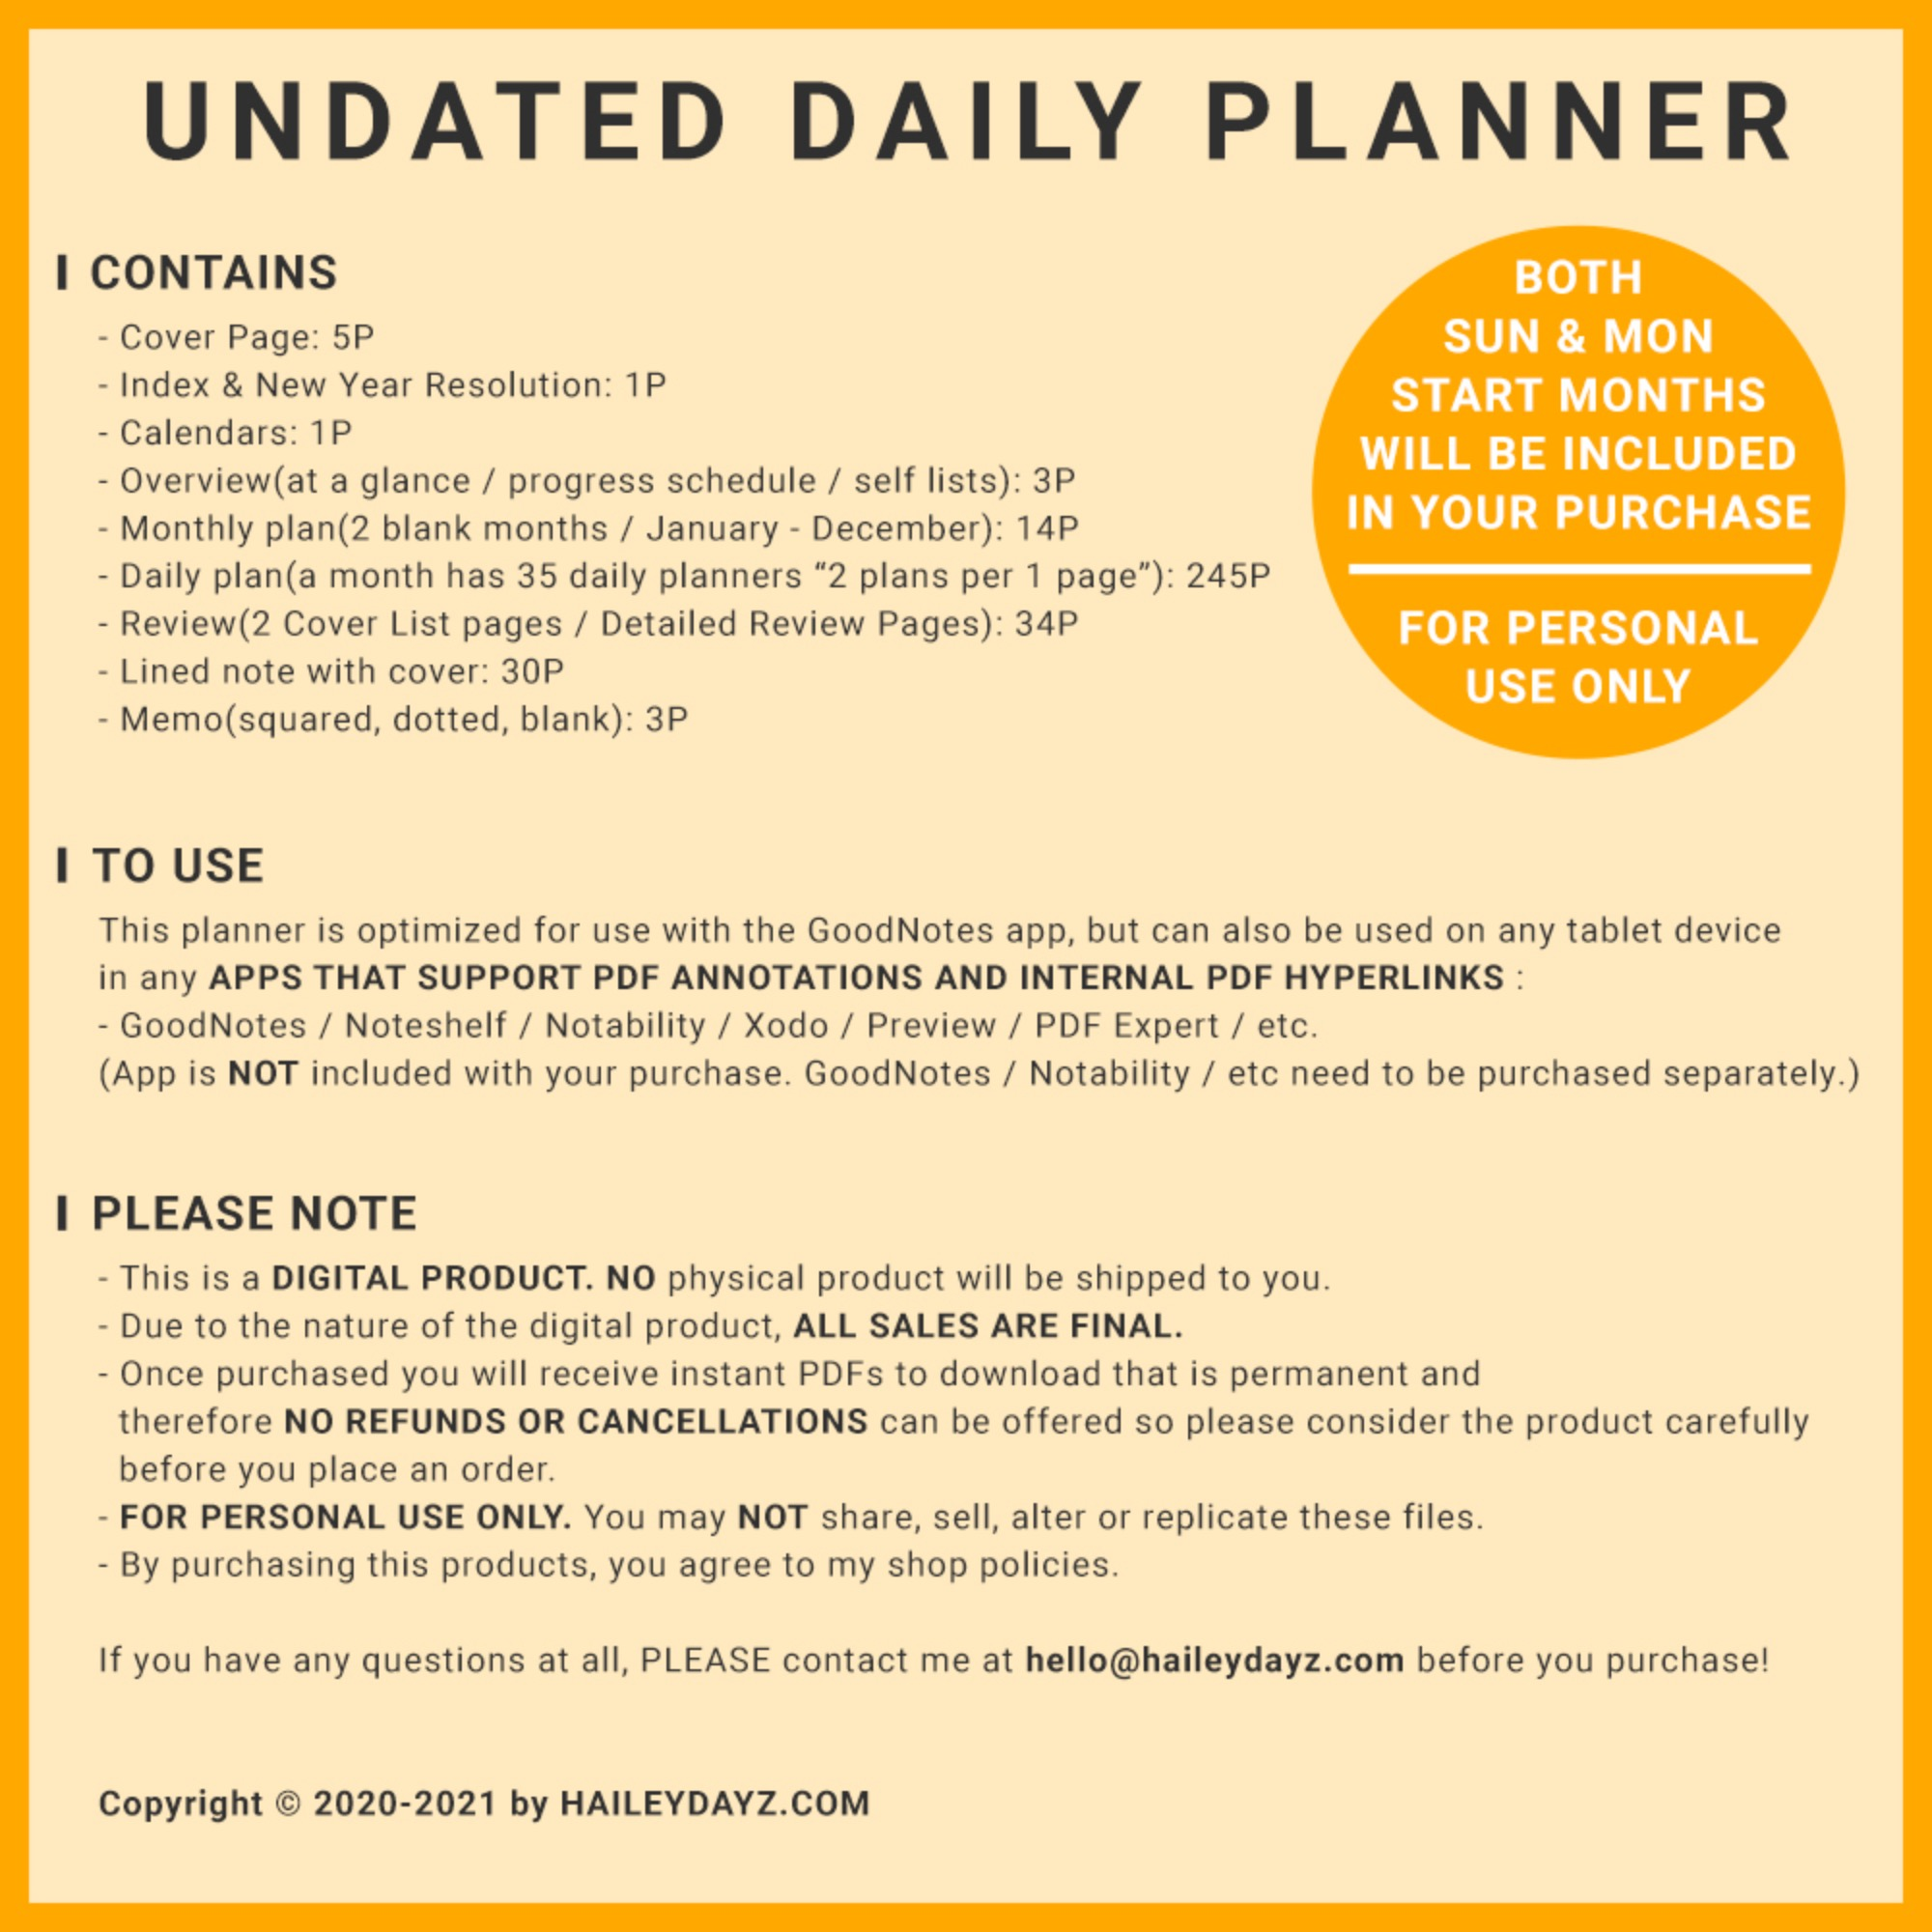 Basic Undated Daily Planner